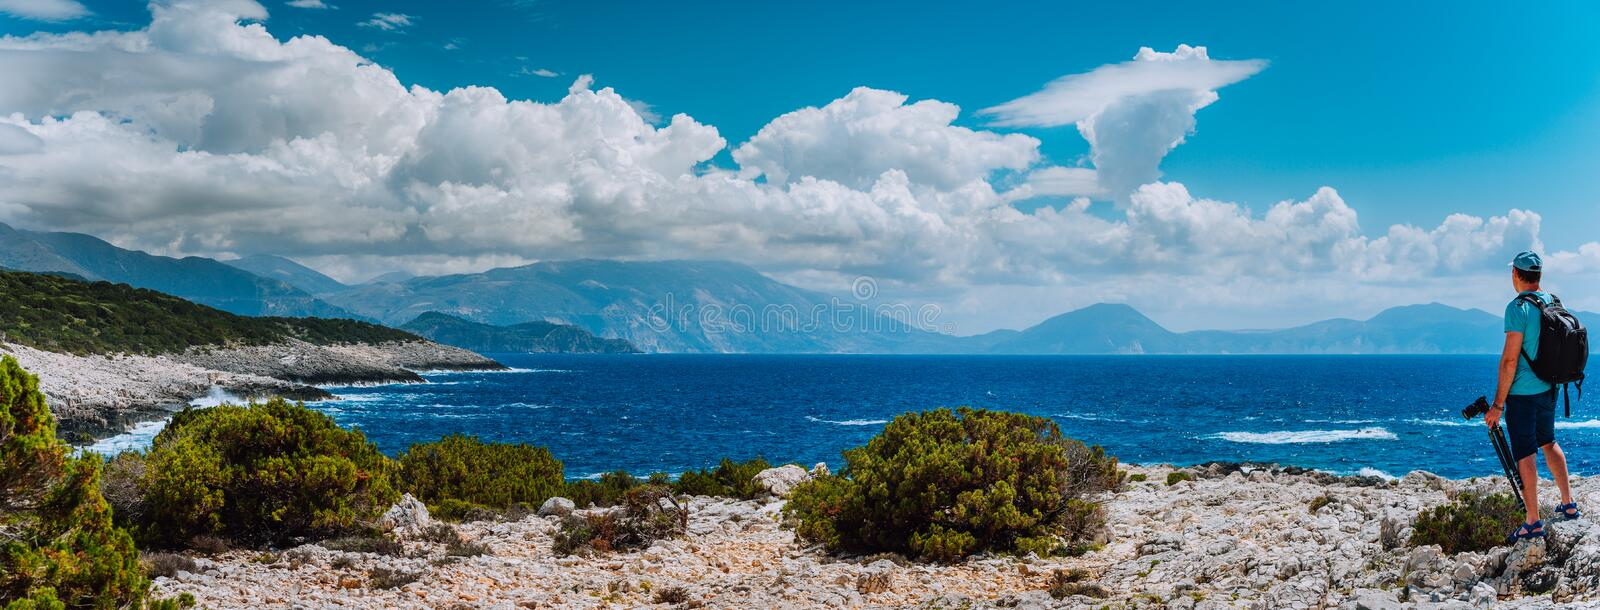 Male tourist with camera admiring breathtaking cloud scenery over the mountain range at the Mediterranean sea coast royalty free stock images